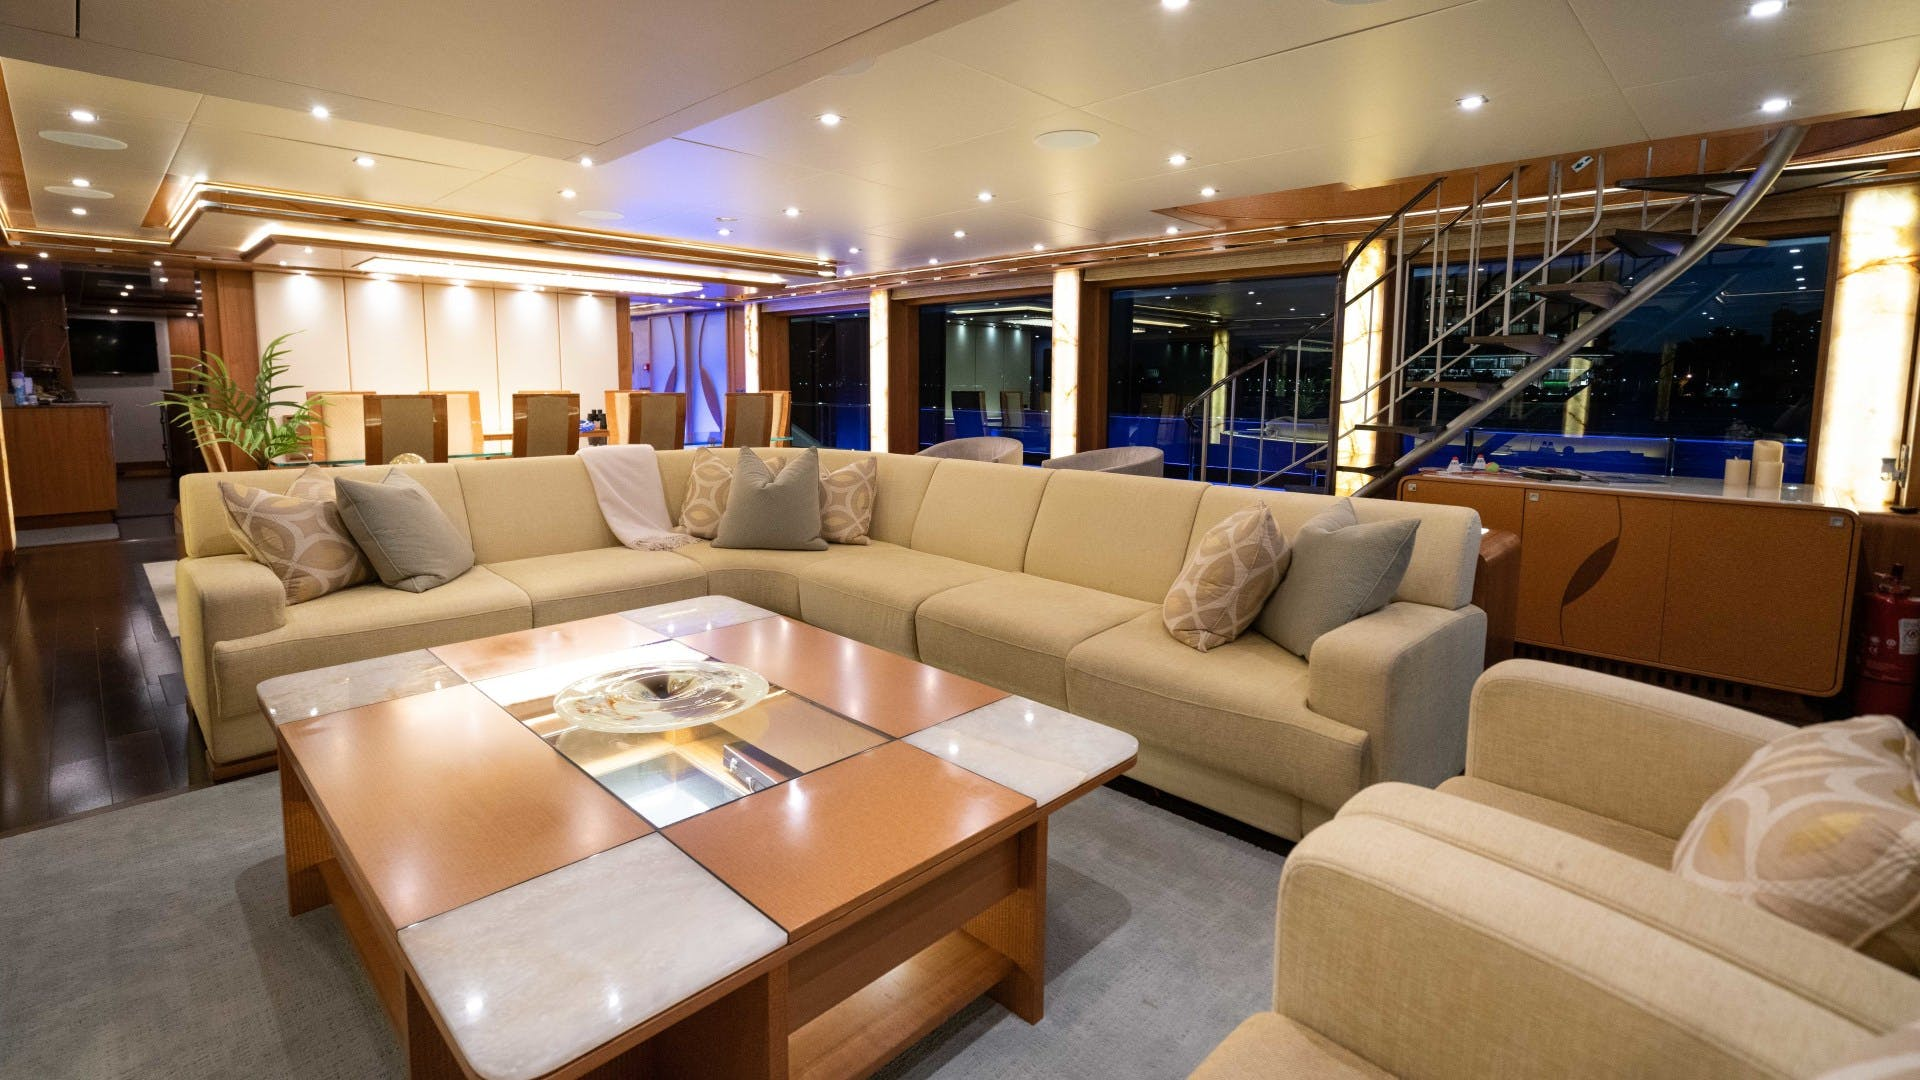 2016 IAG 133' Motor Yacht SERENITY   Picture 6 of 120